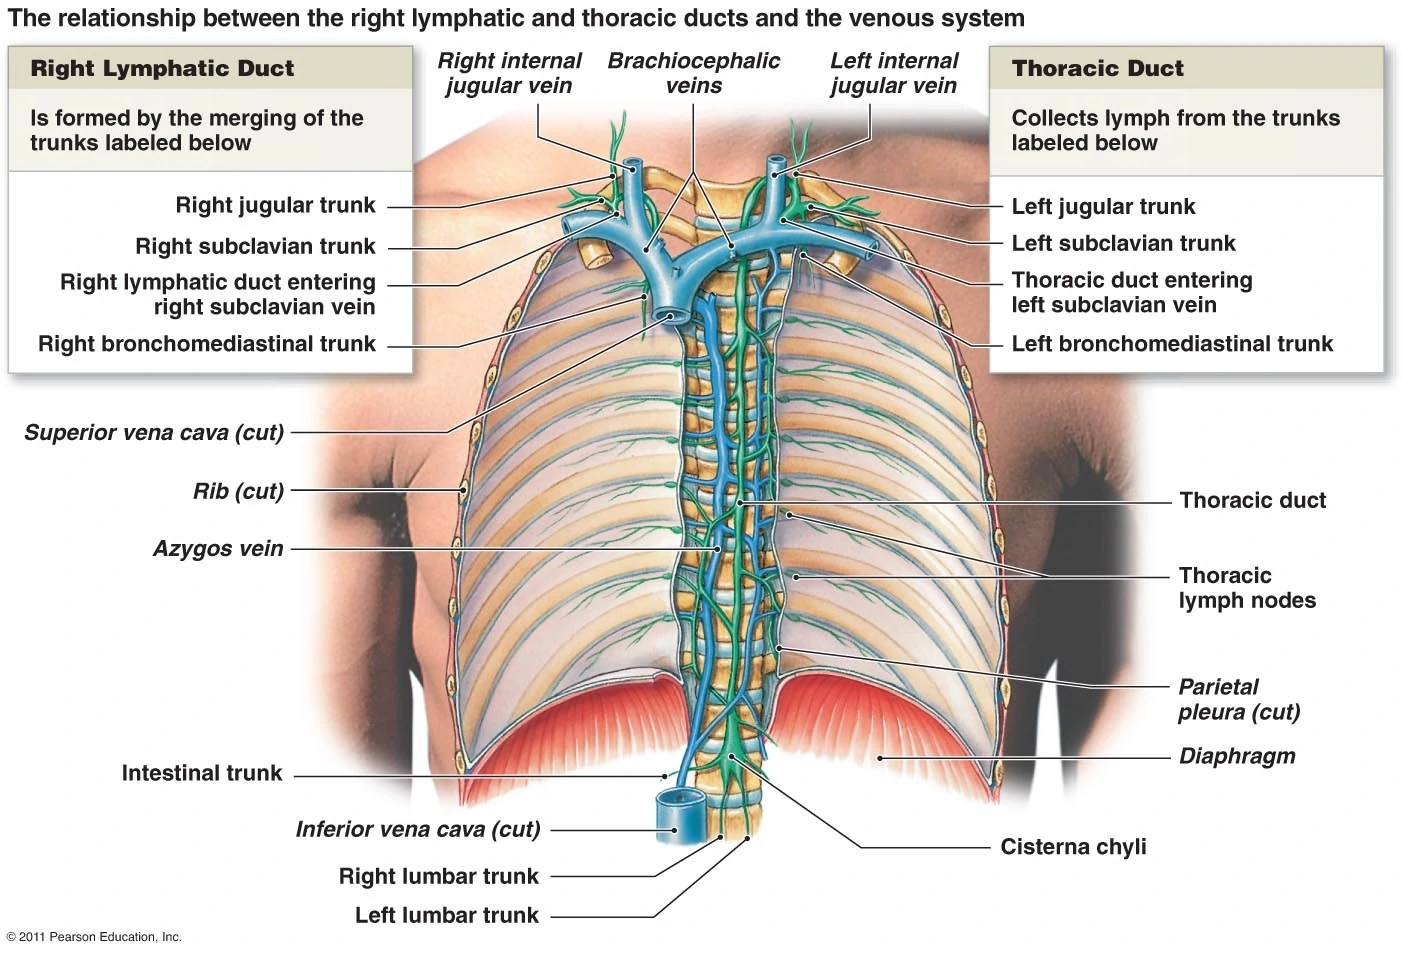 medium resolution of lymphducts course the thoracic duct enters